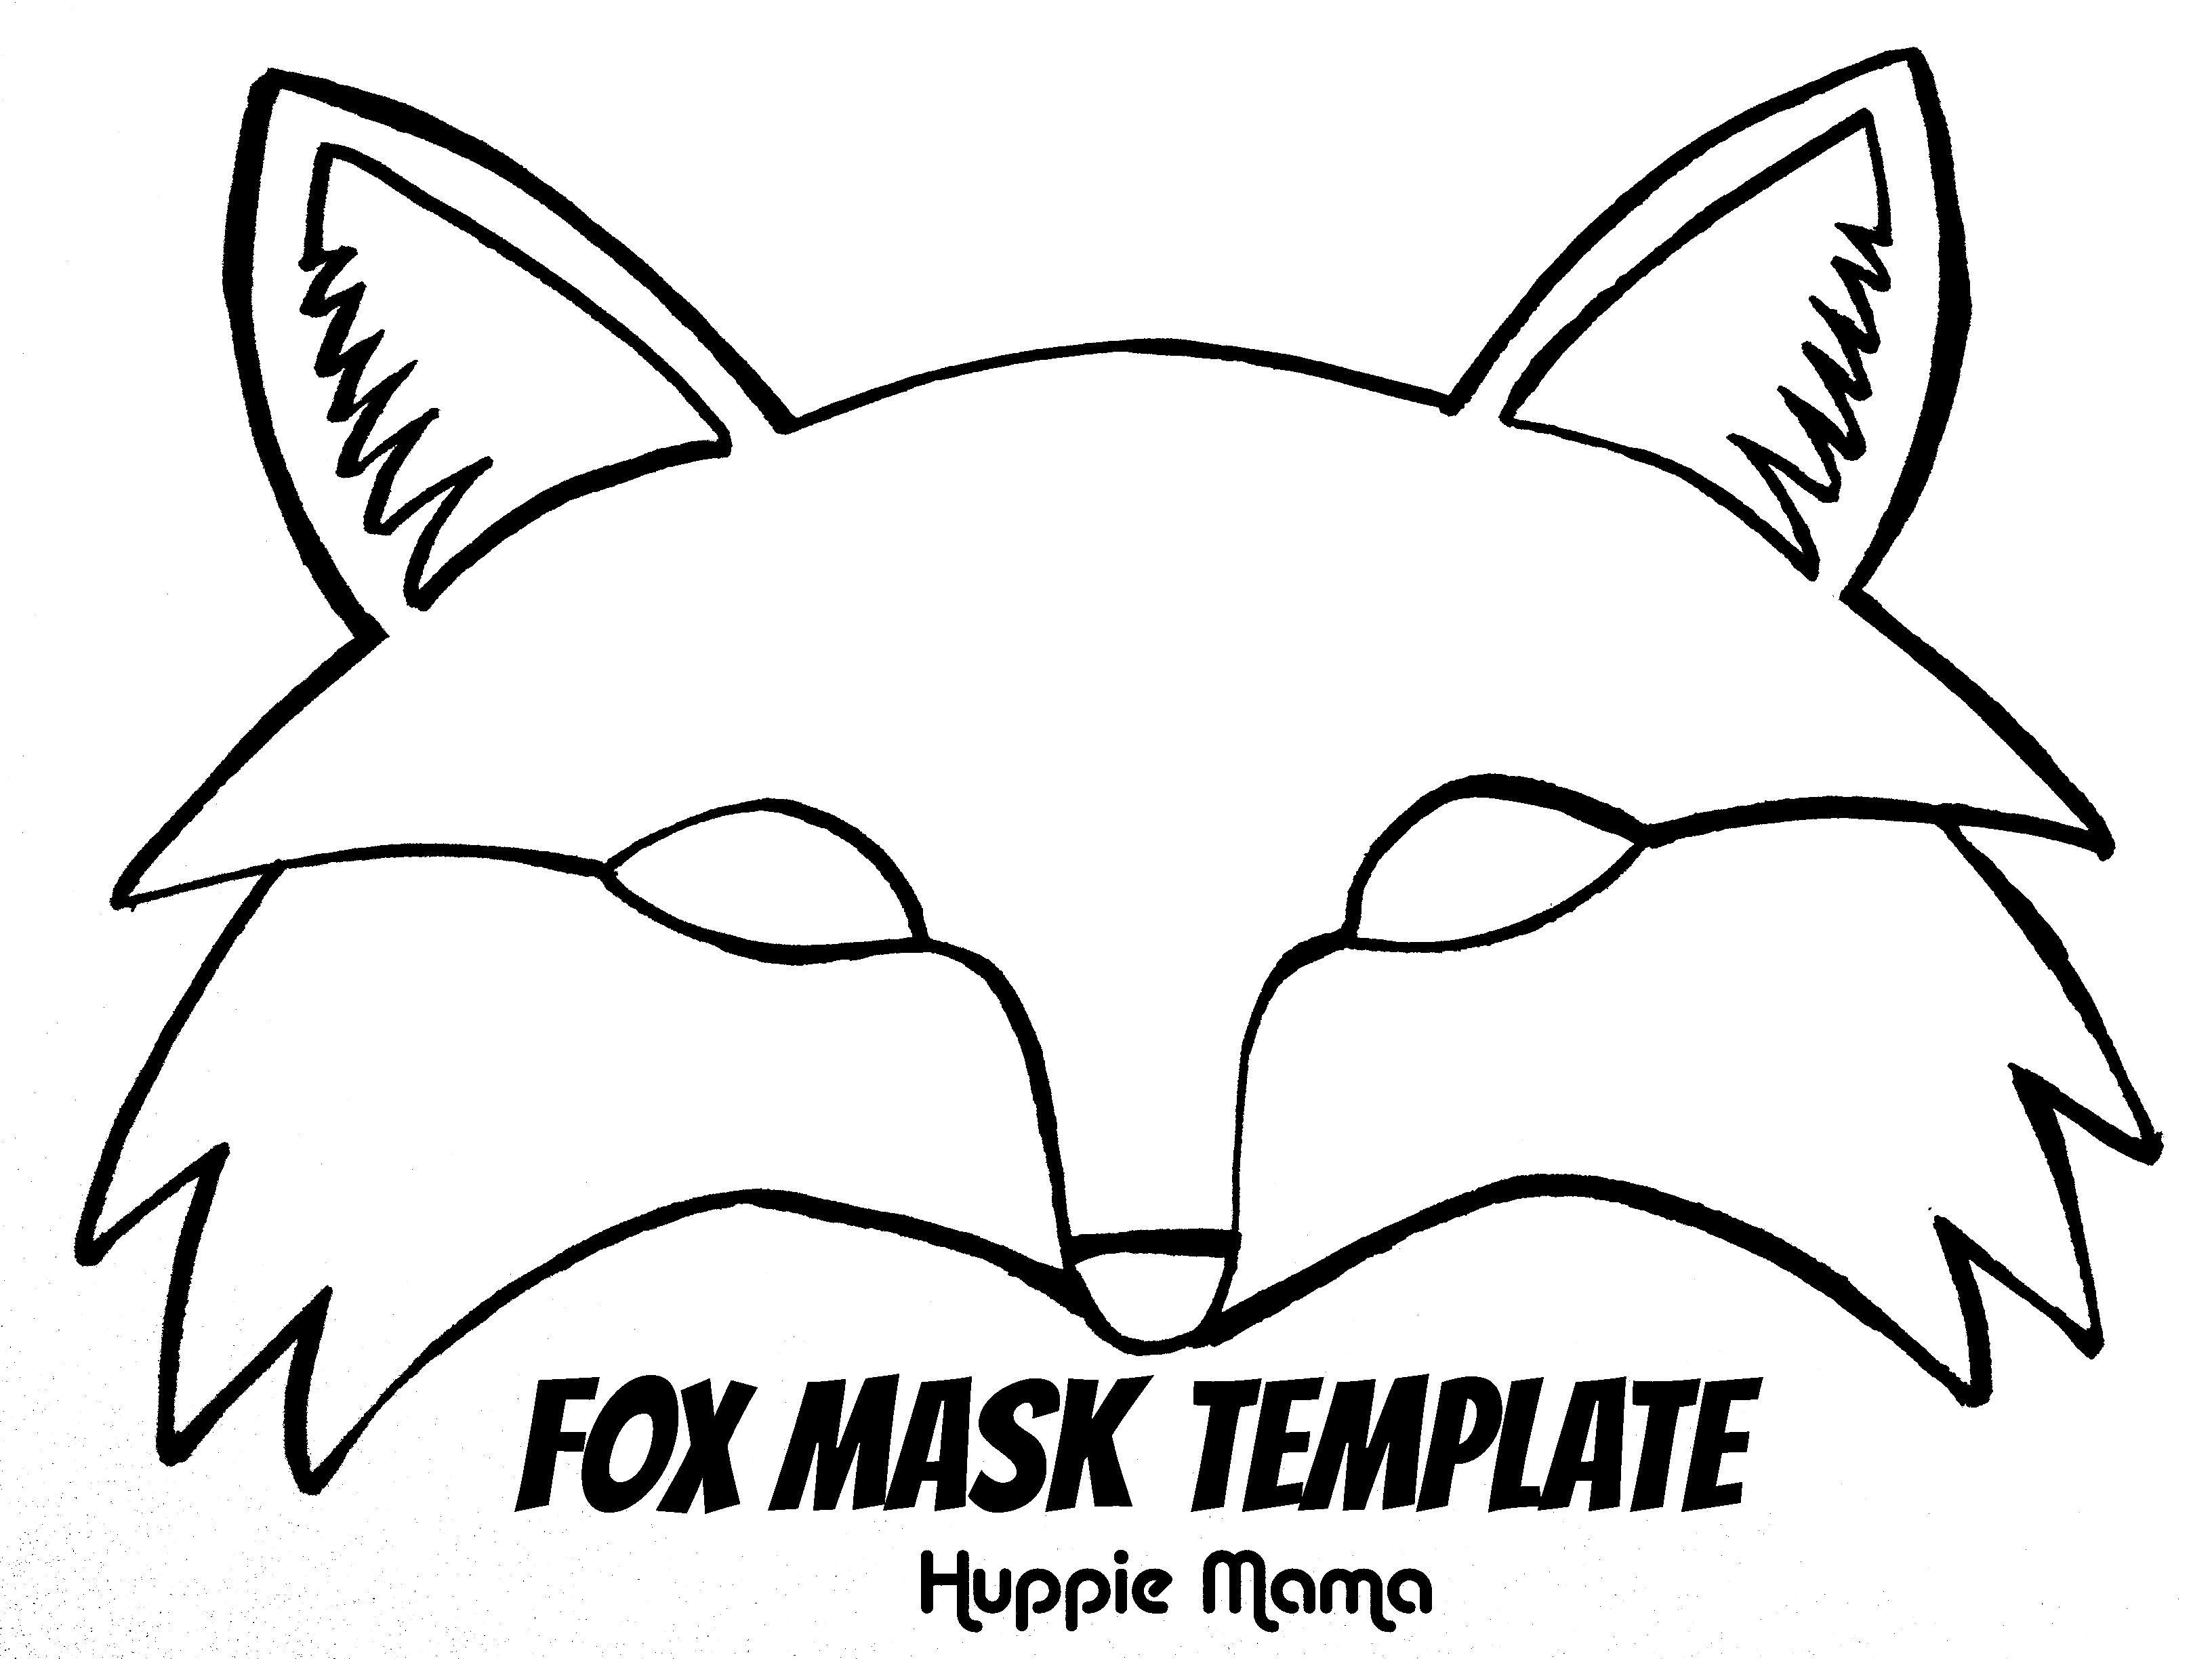 Fox template fox mask template foxy fox pinterest for Woodland animal masks template